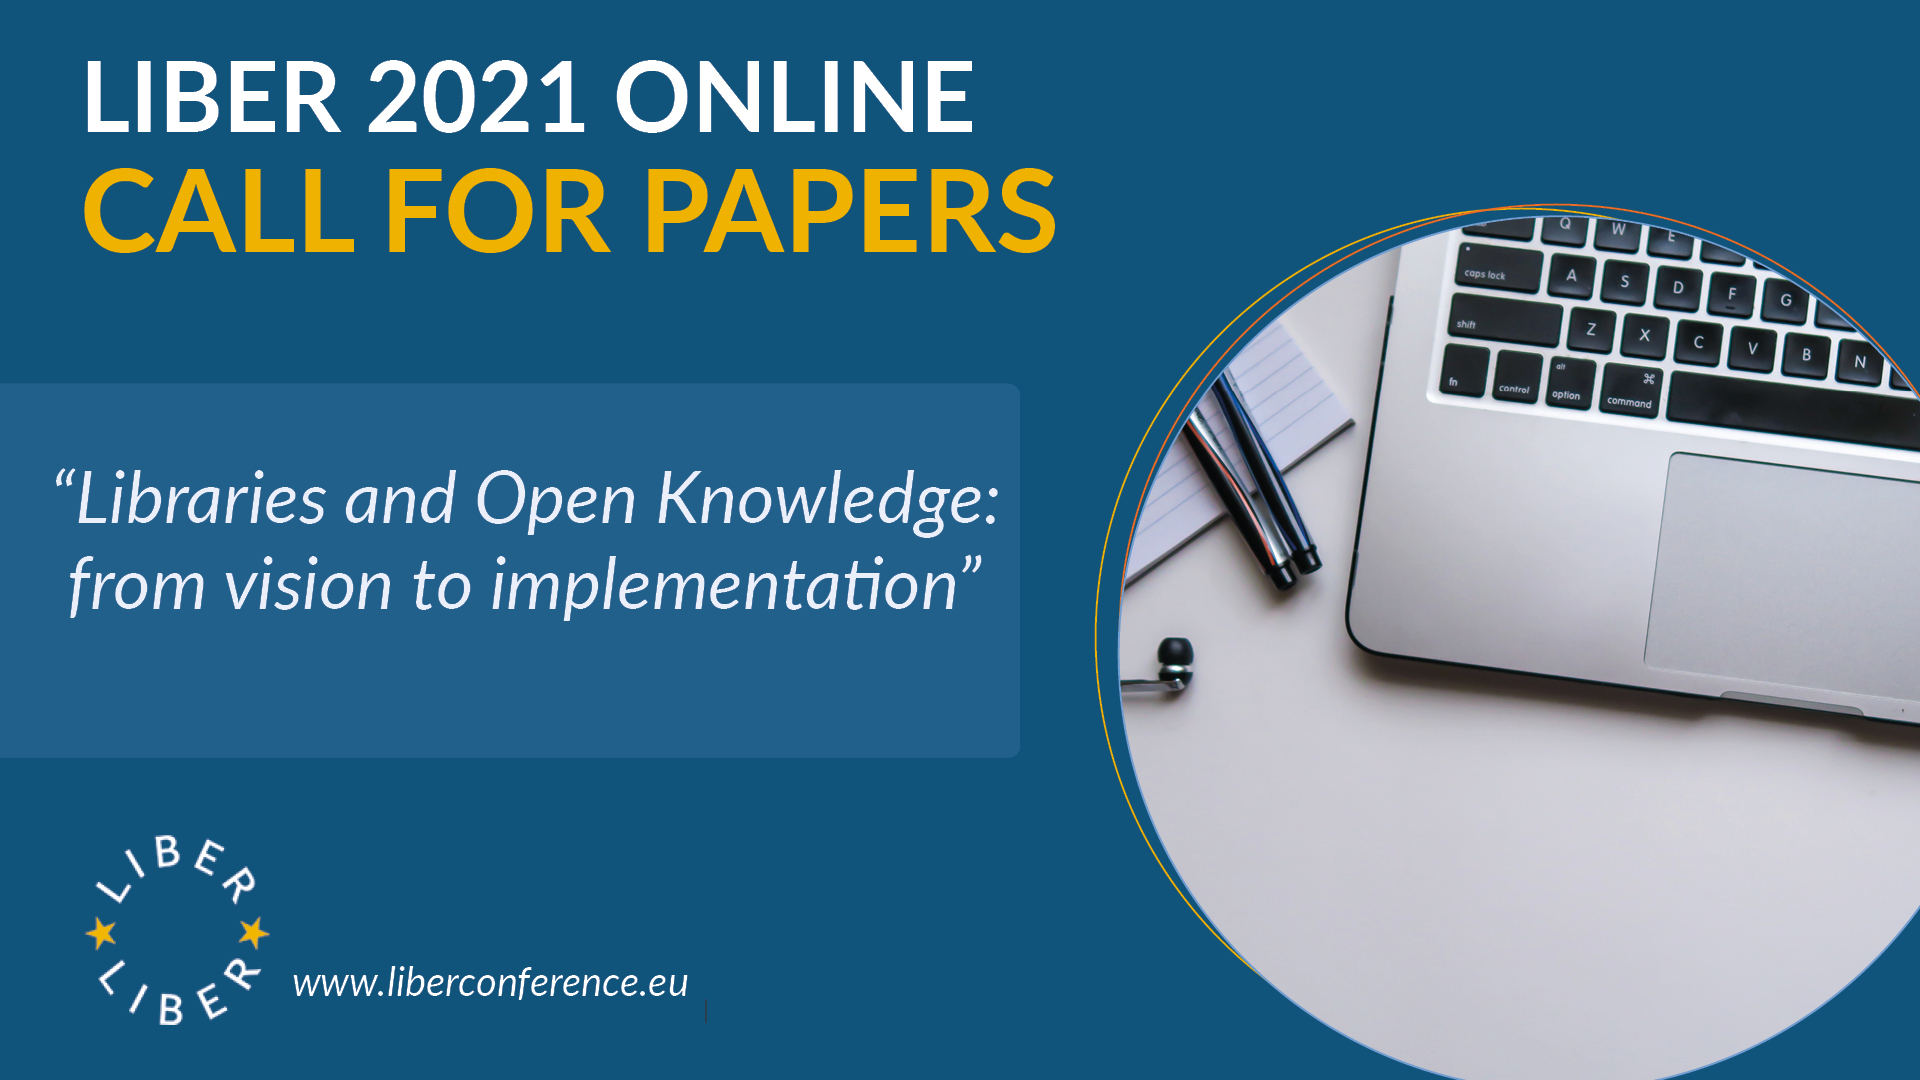 LIBER 2021 Online: Call for Papers